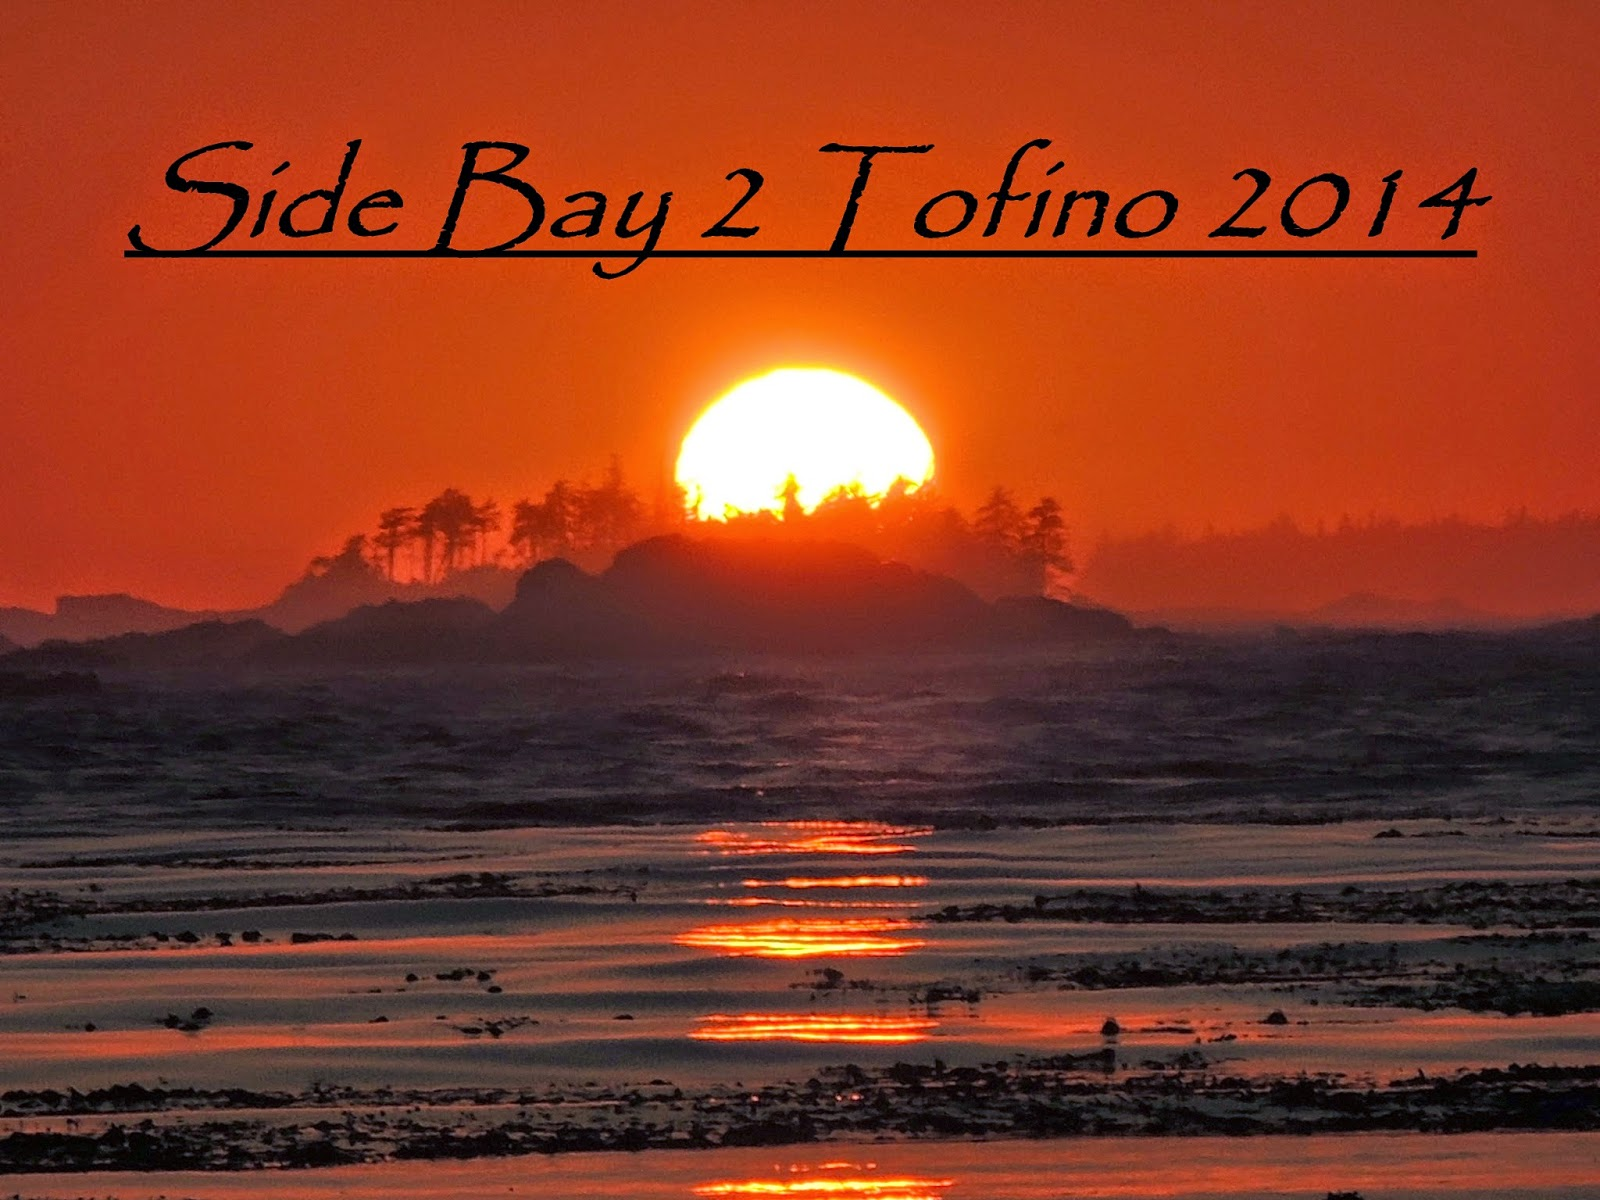 3meterswell side bay 2 tofino 2014 saturday november 22 2014 nvjuhfo Image collections